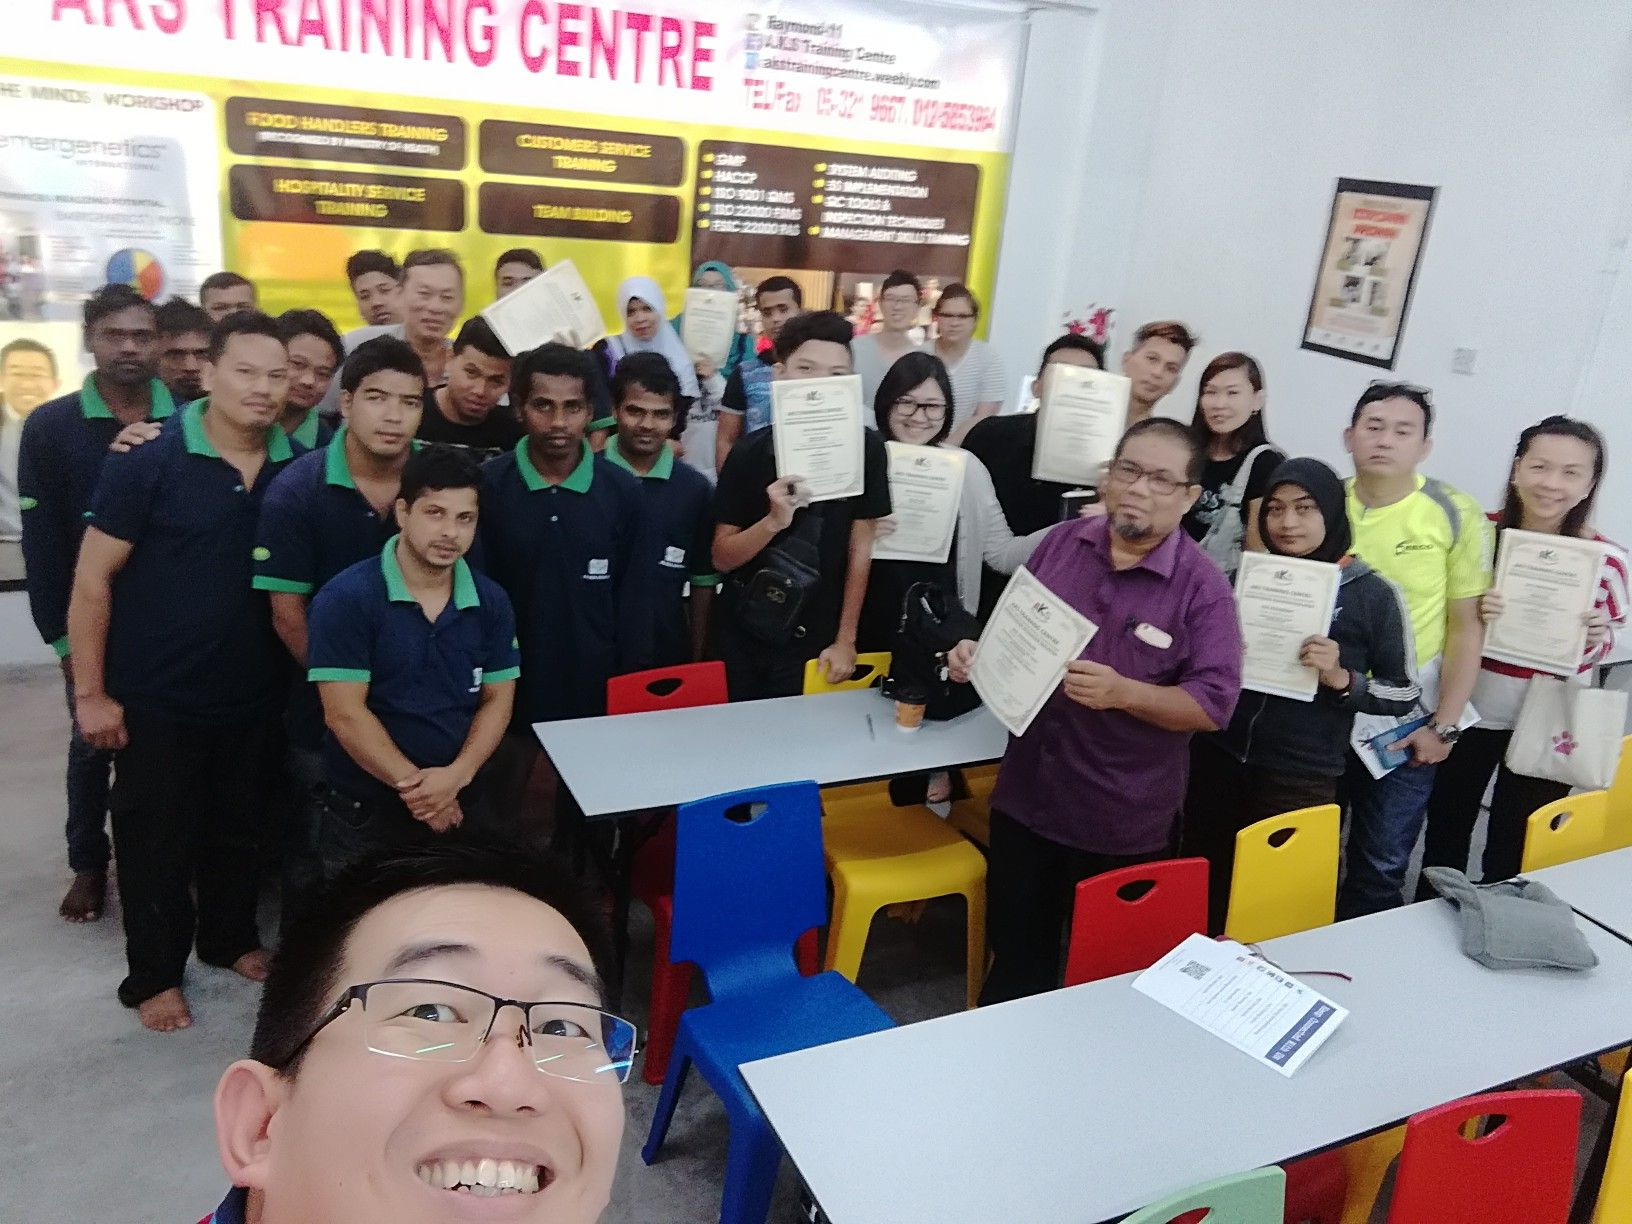 An almost full house training today. Thanks for choosing